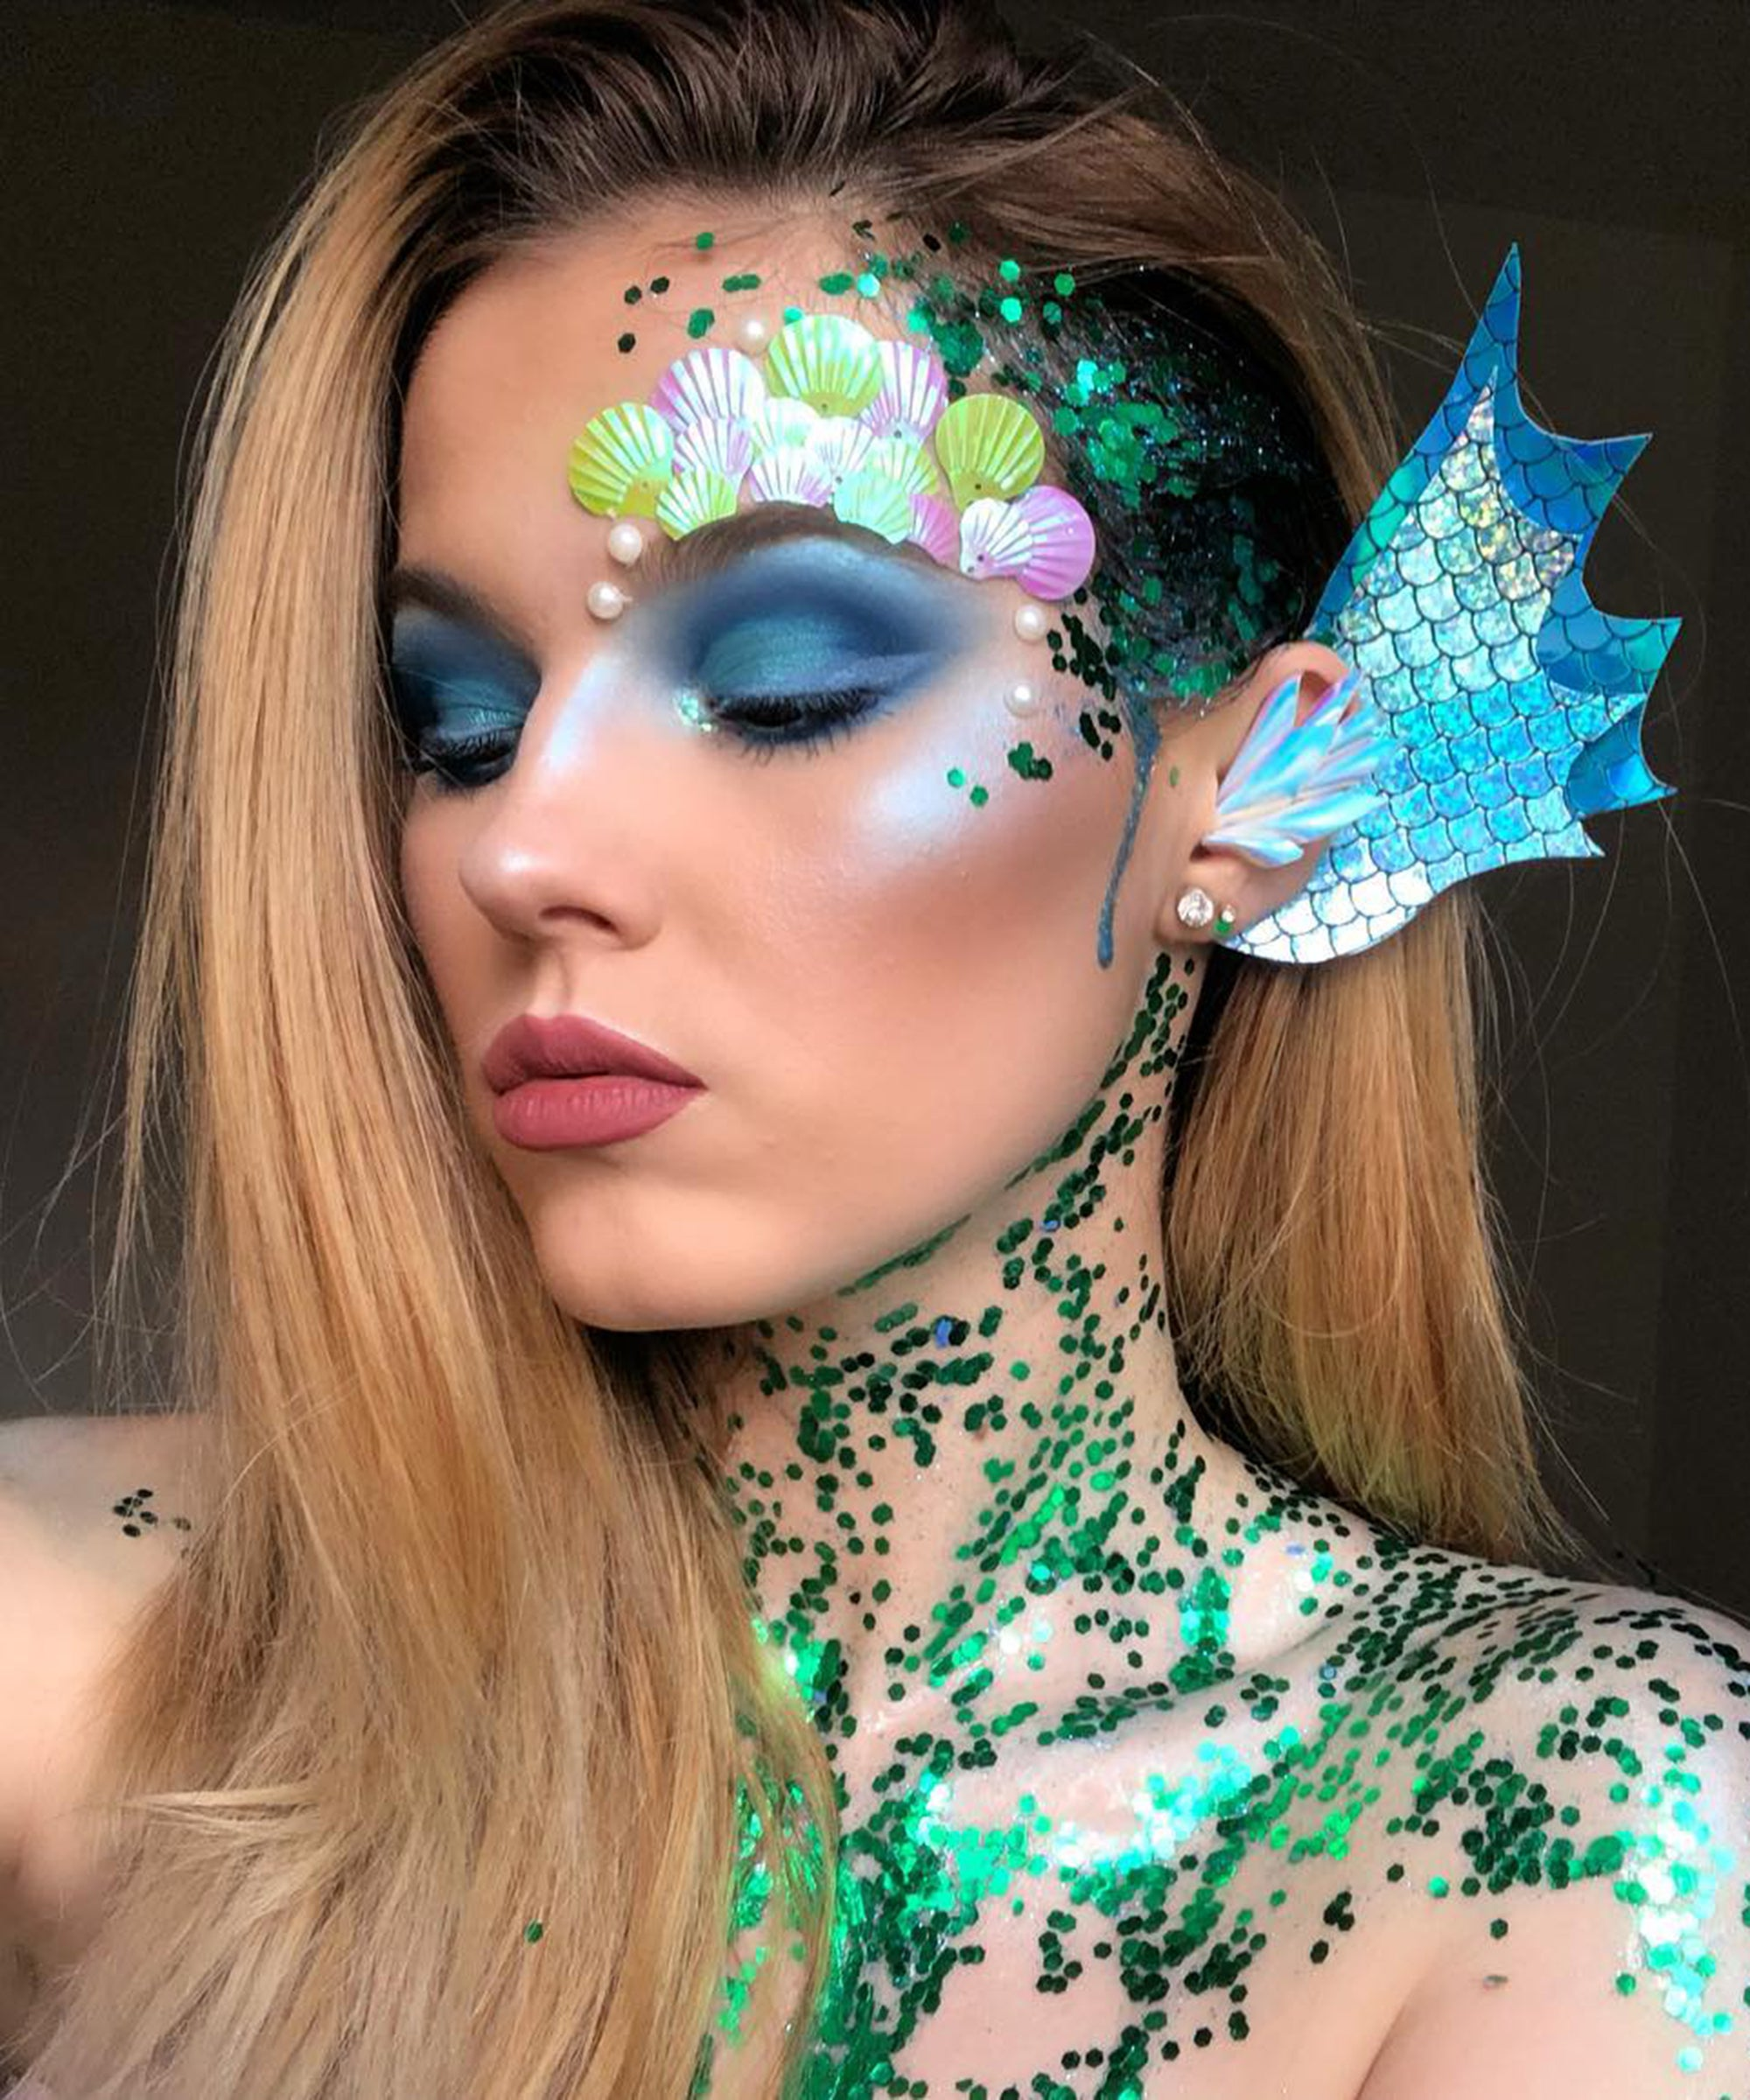 9 Mermaid Makeup Ideas For Halloween That Are Far From Basic